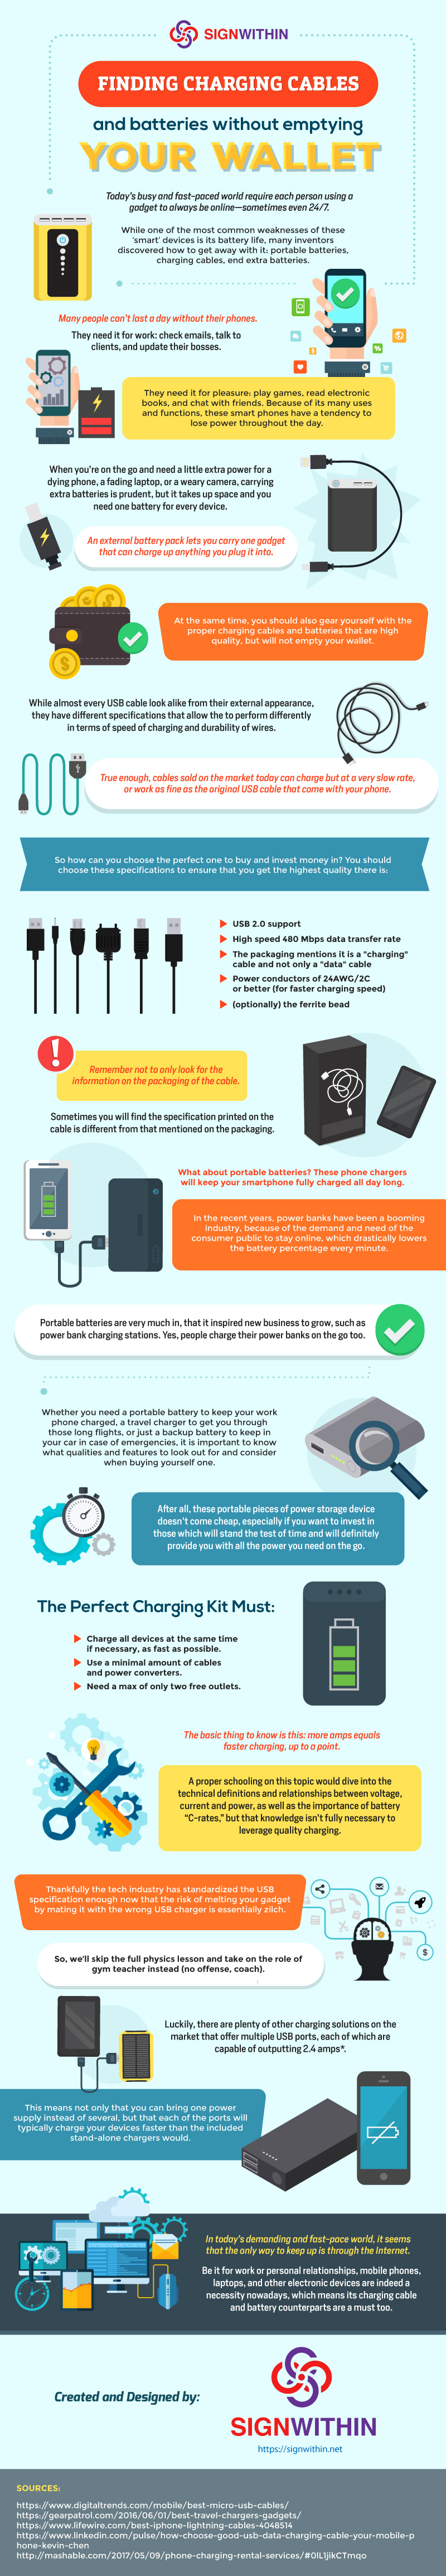 How To Find Charging Cables And Batteries Without Emptying Your Wallet